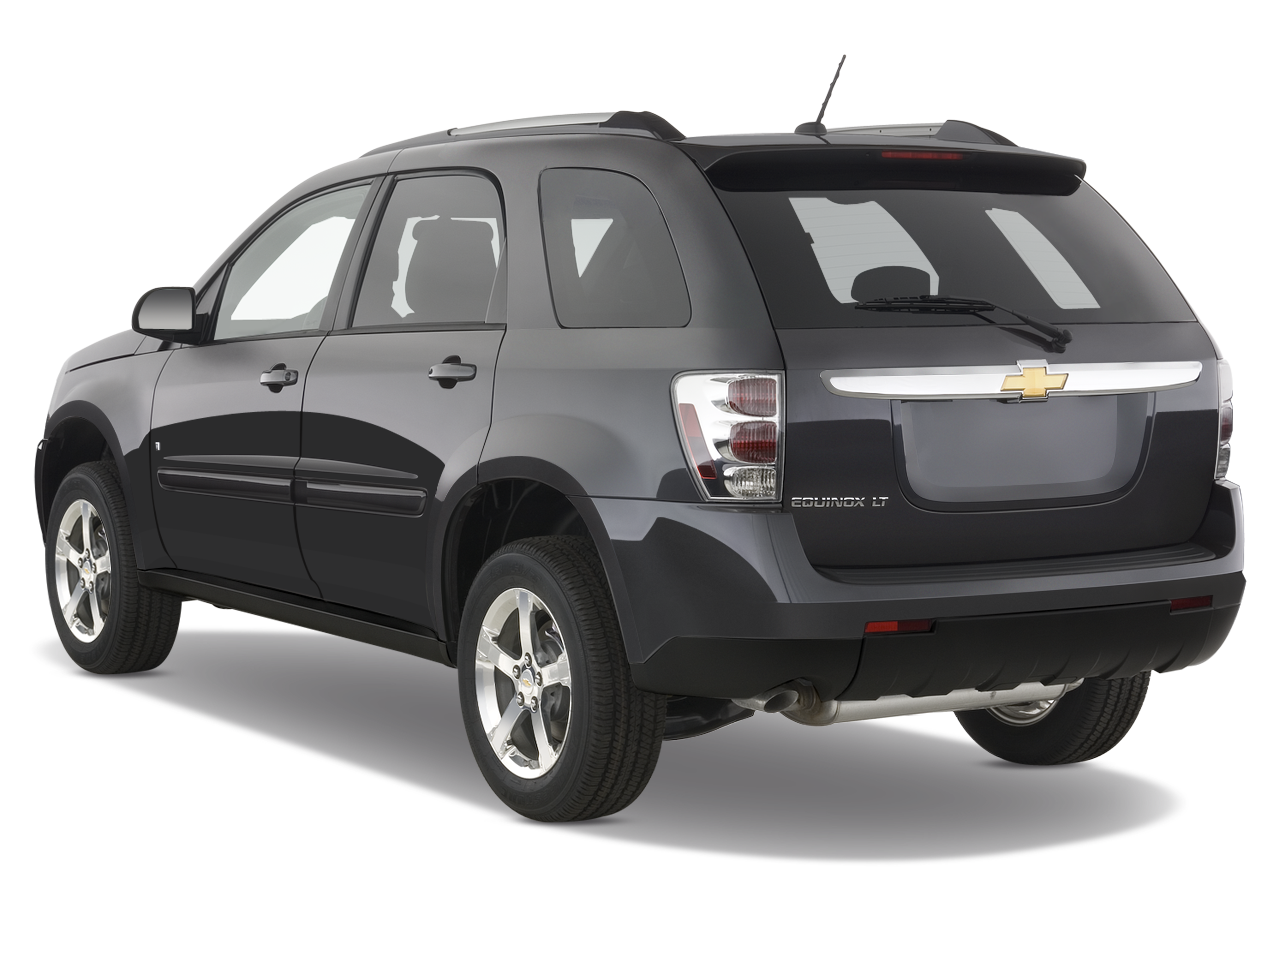 2008 Chevrolet Equinox Fuel Cell Diary Refueling Problems Automobile Magazine